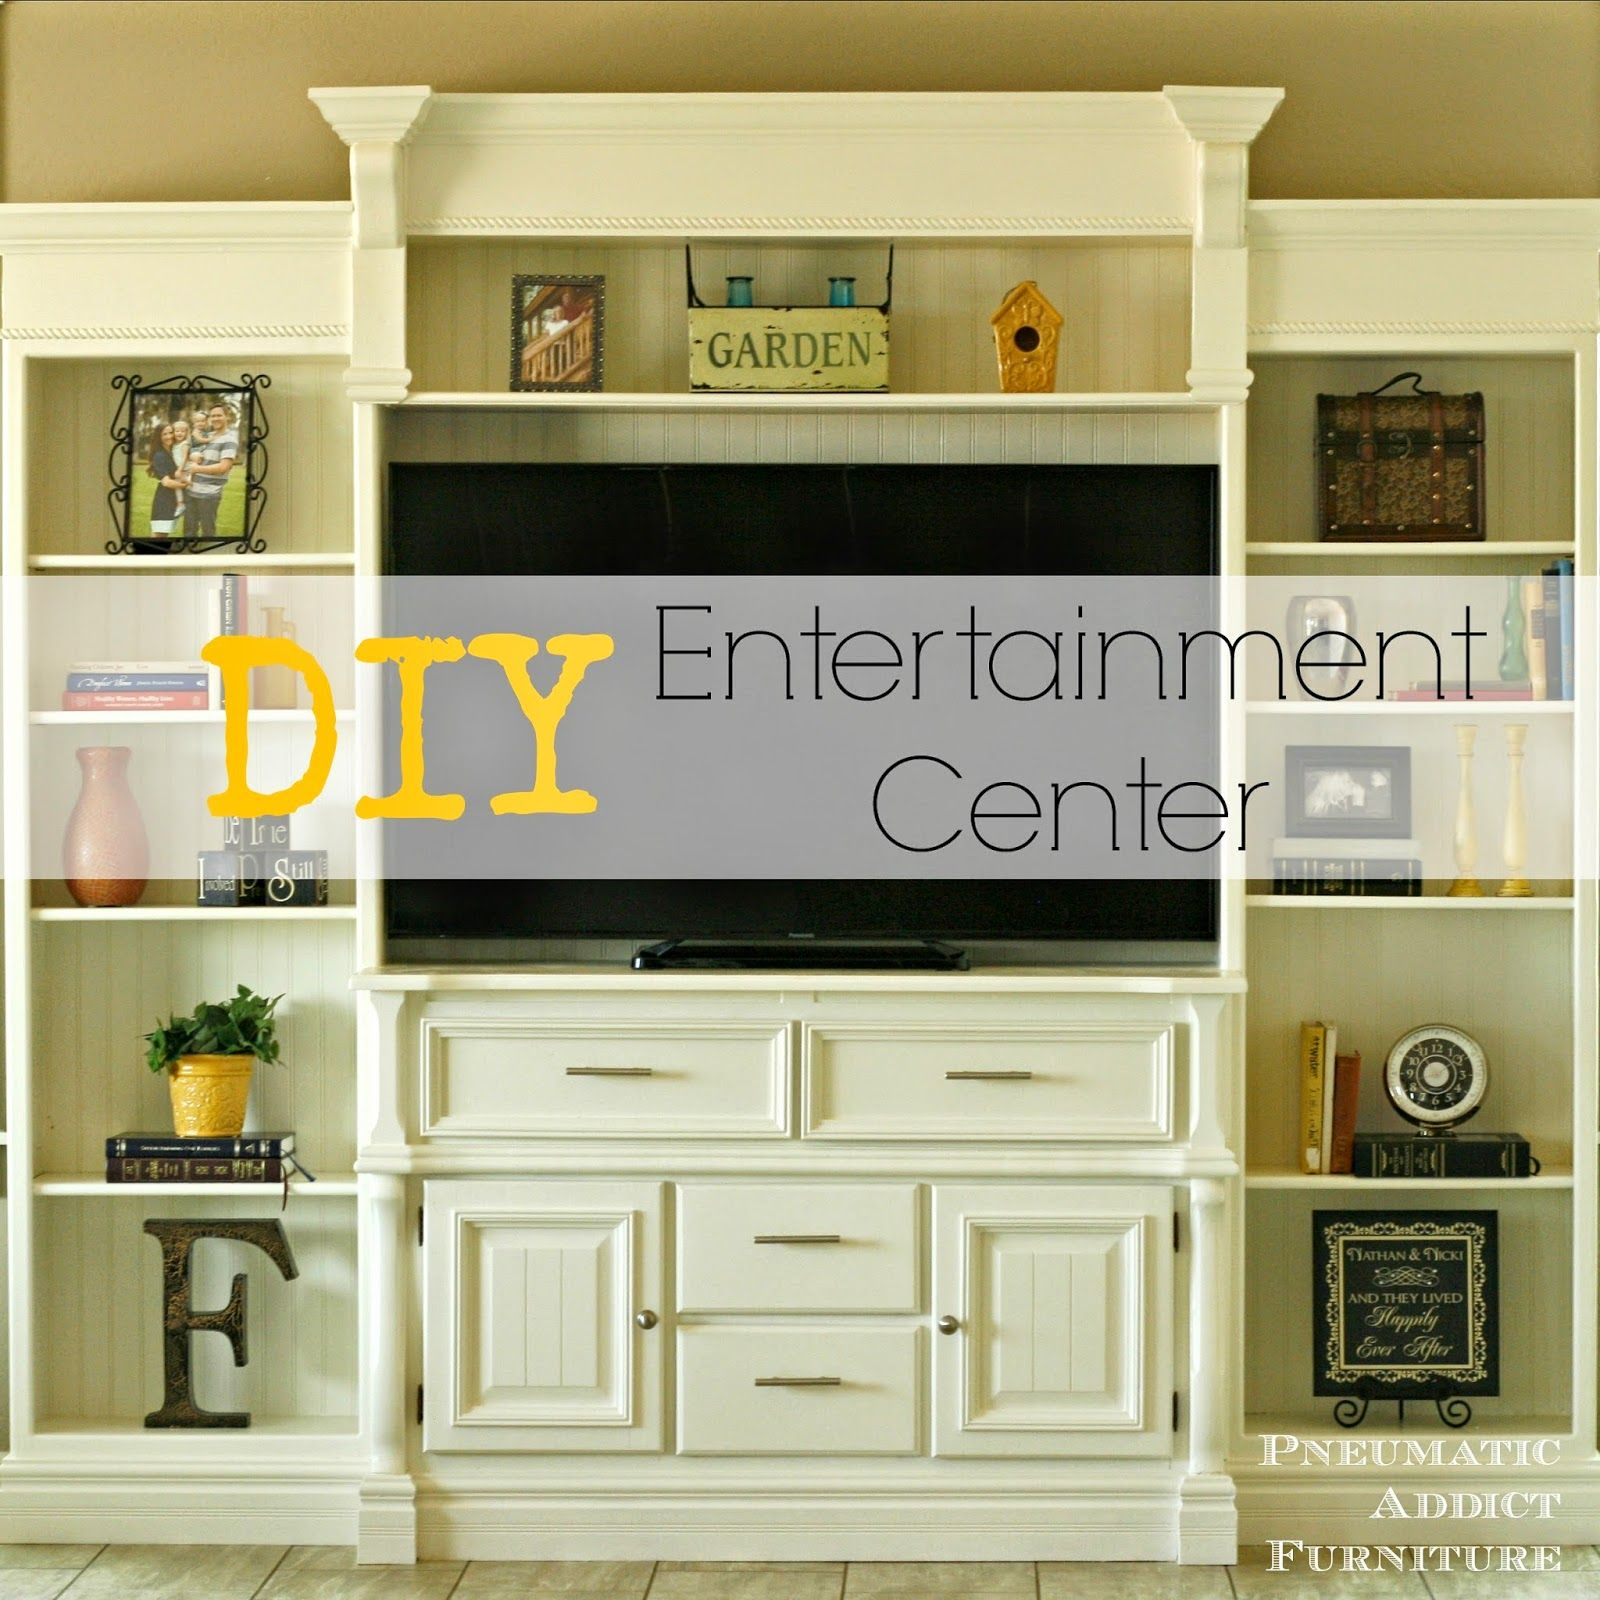 Diy entertainment center stuff pinterest power tools my best